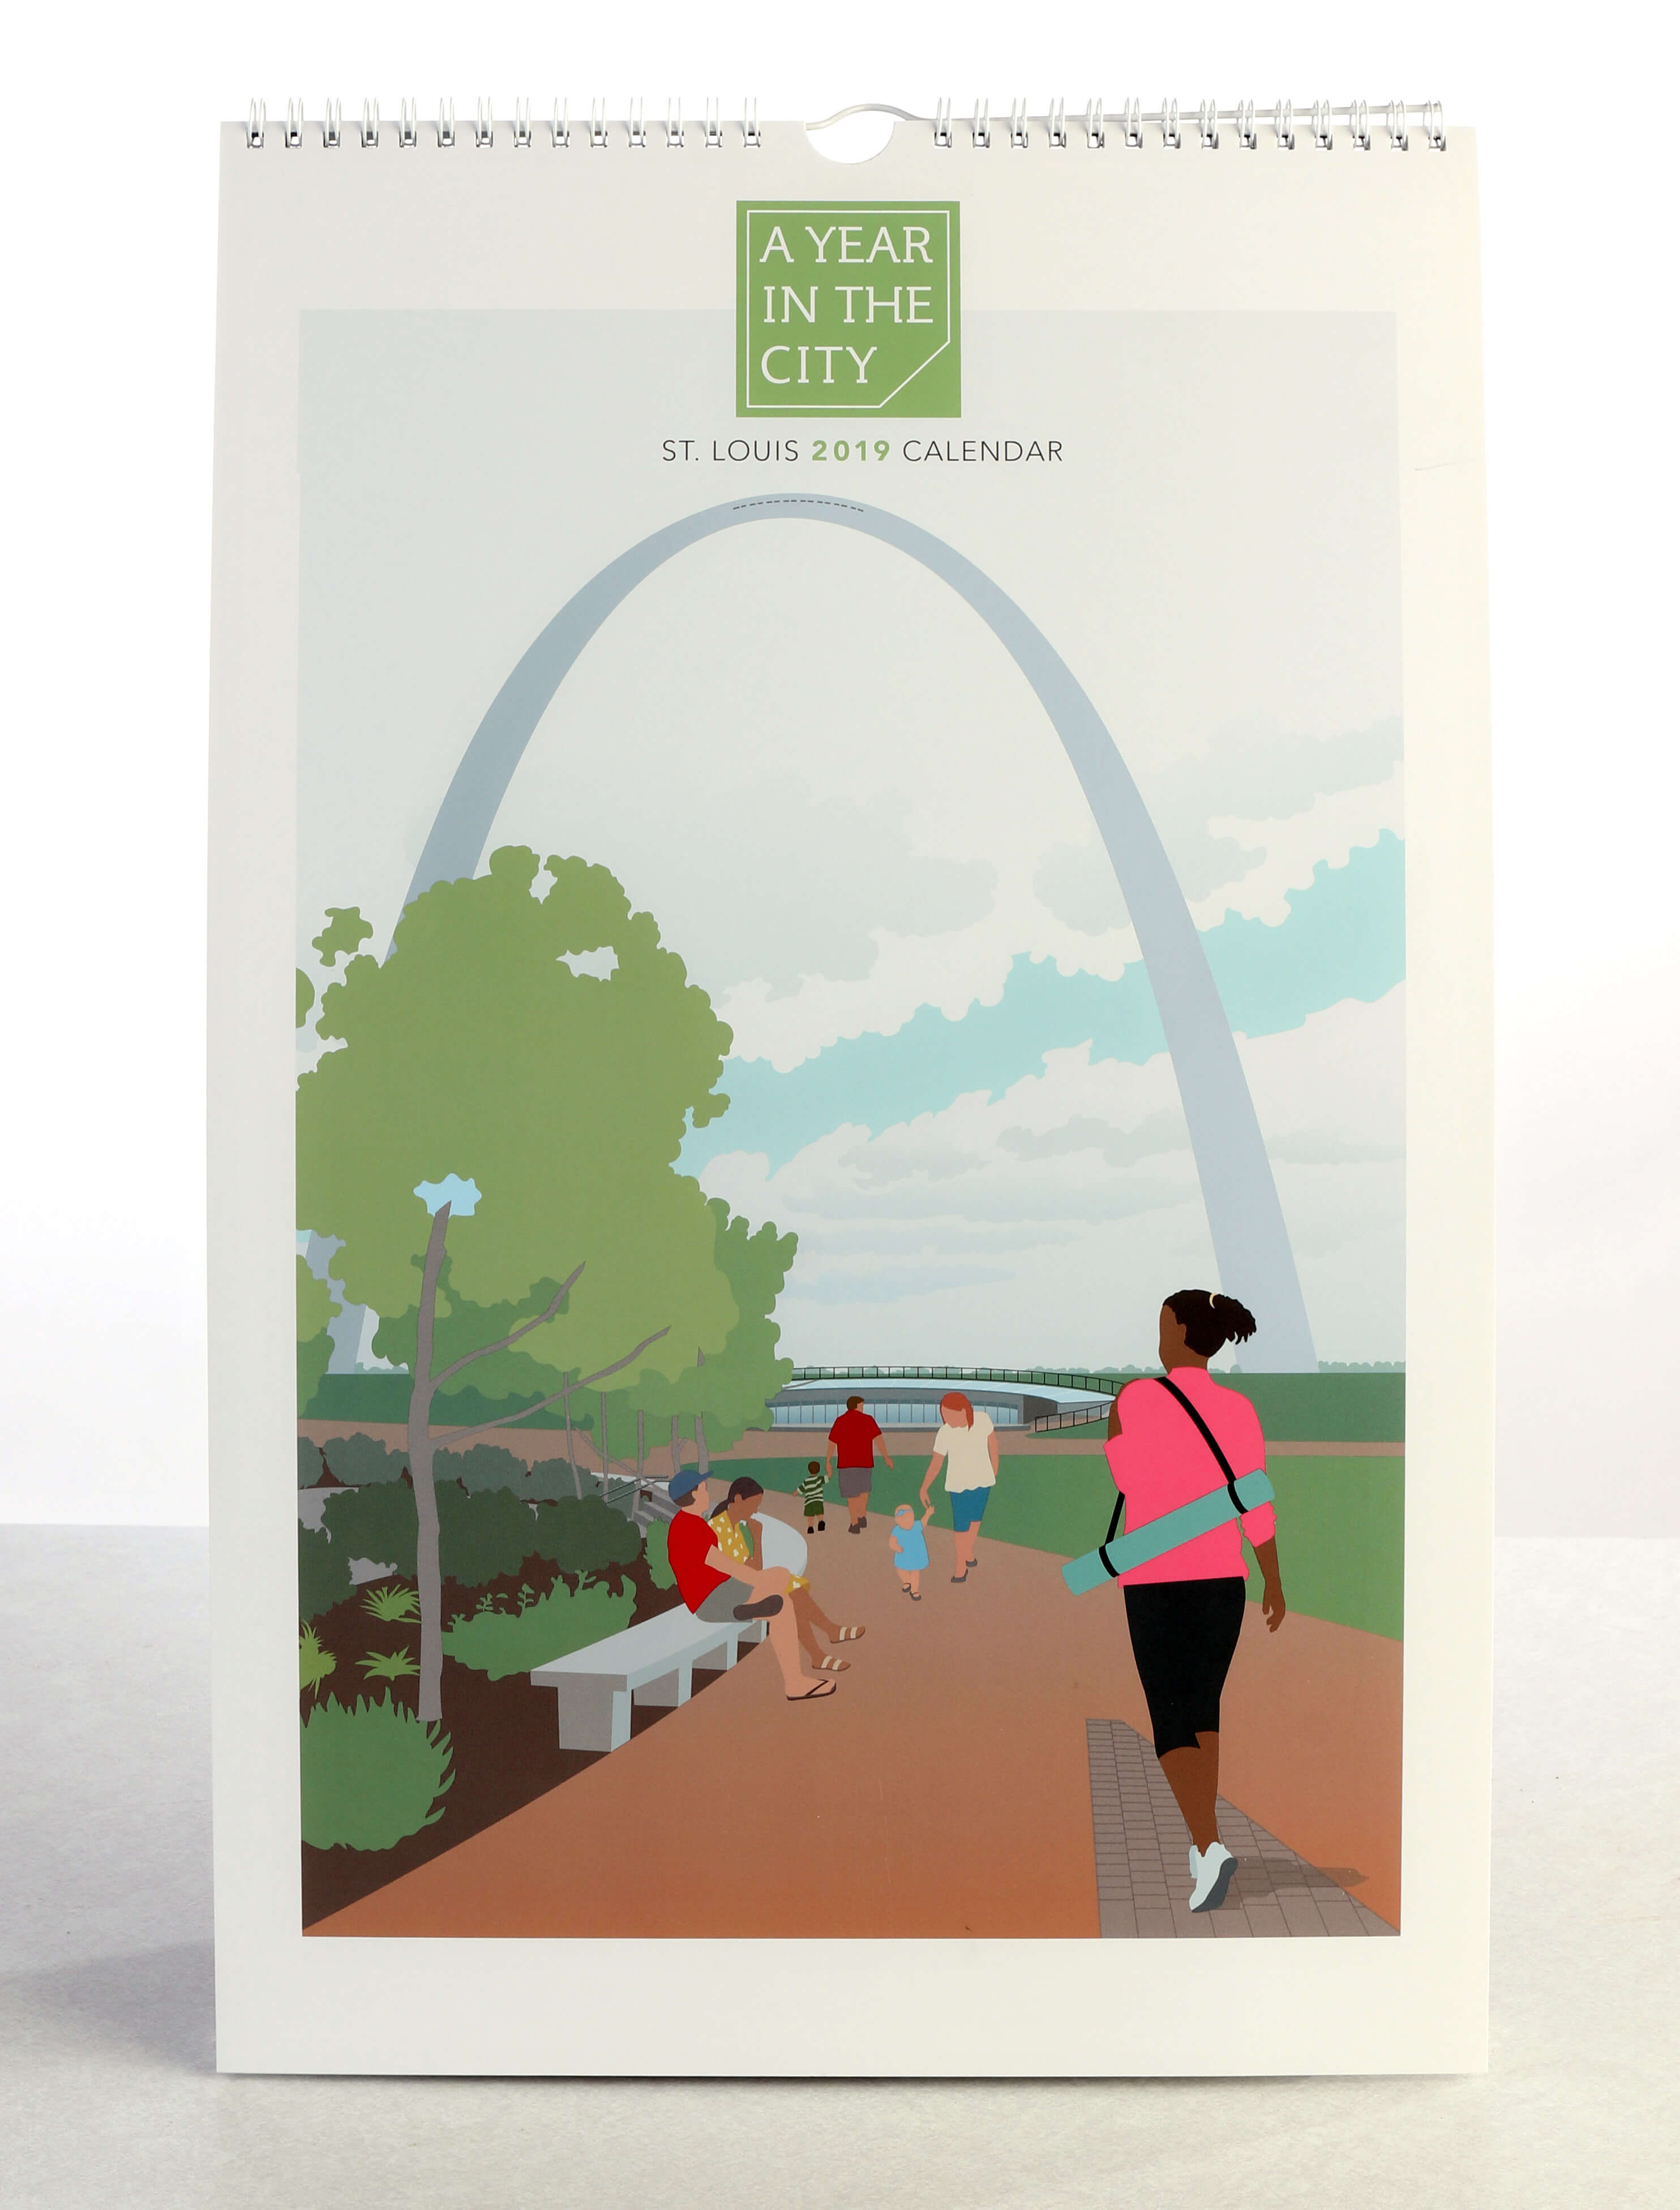 A Year in the City St. Louis calendar